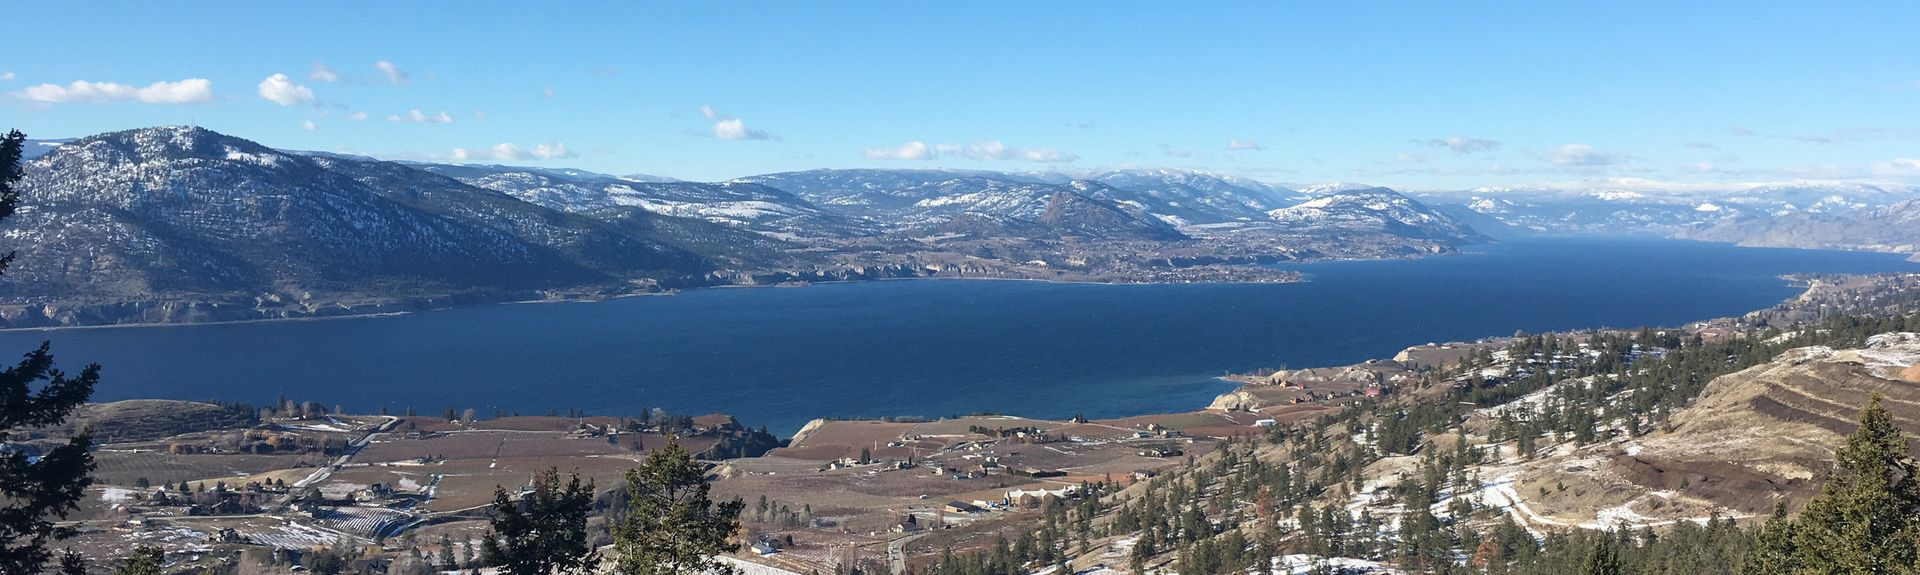 Red Rooster Winery, Penticton, British Columbia, Canada